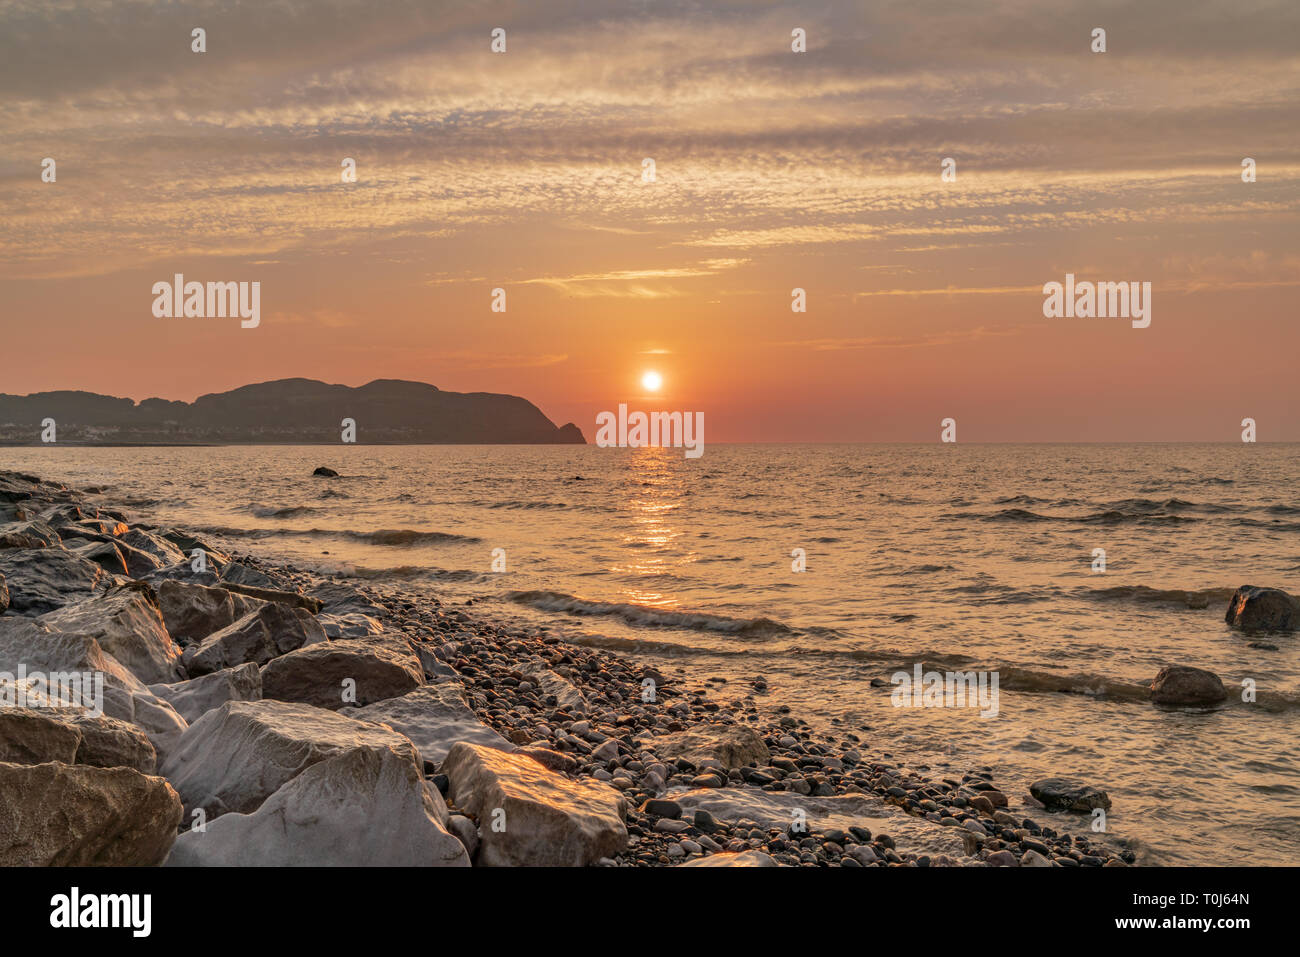 Sunset over the Welsh coast in Rhos-on-Sea, Conwy, Wales, UK Stock Photo